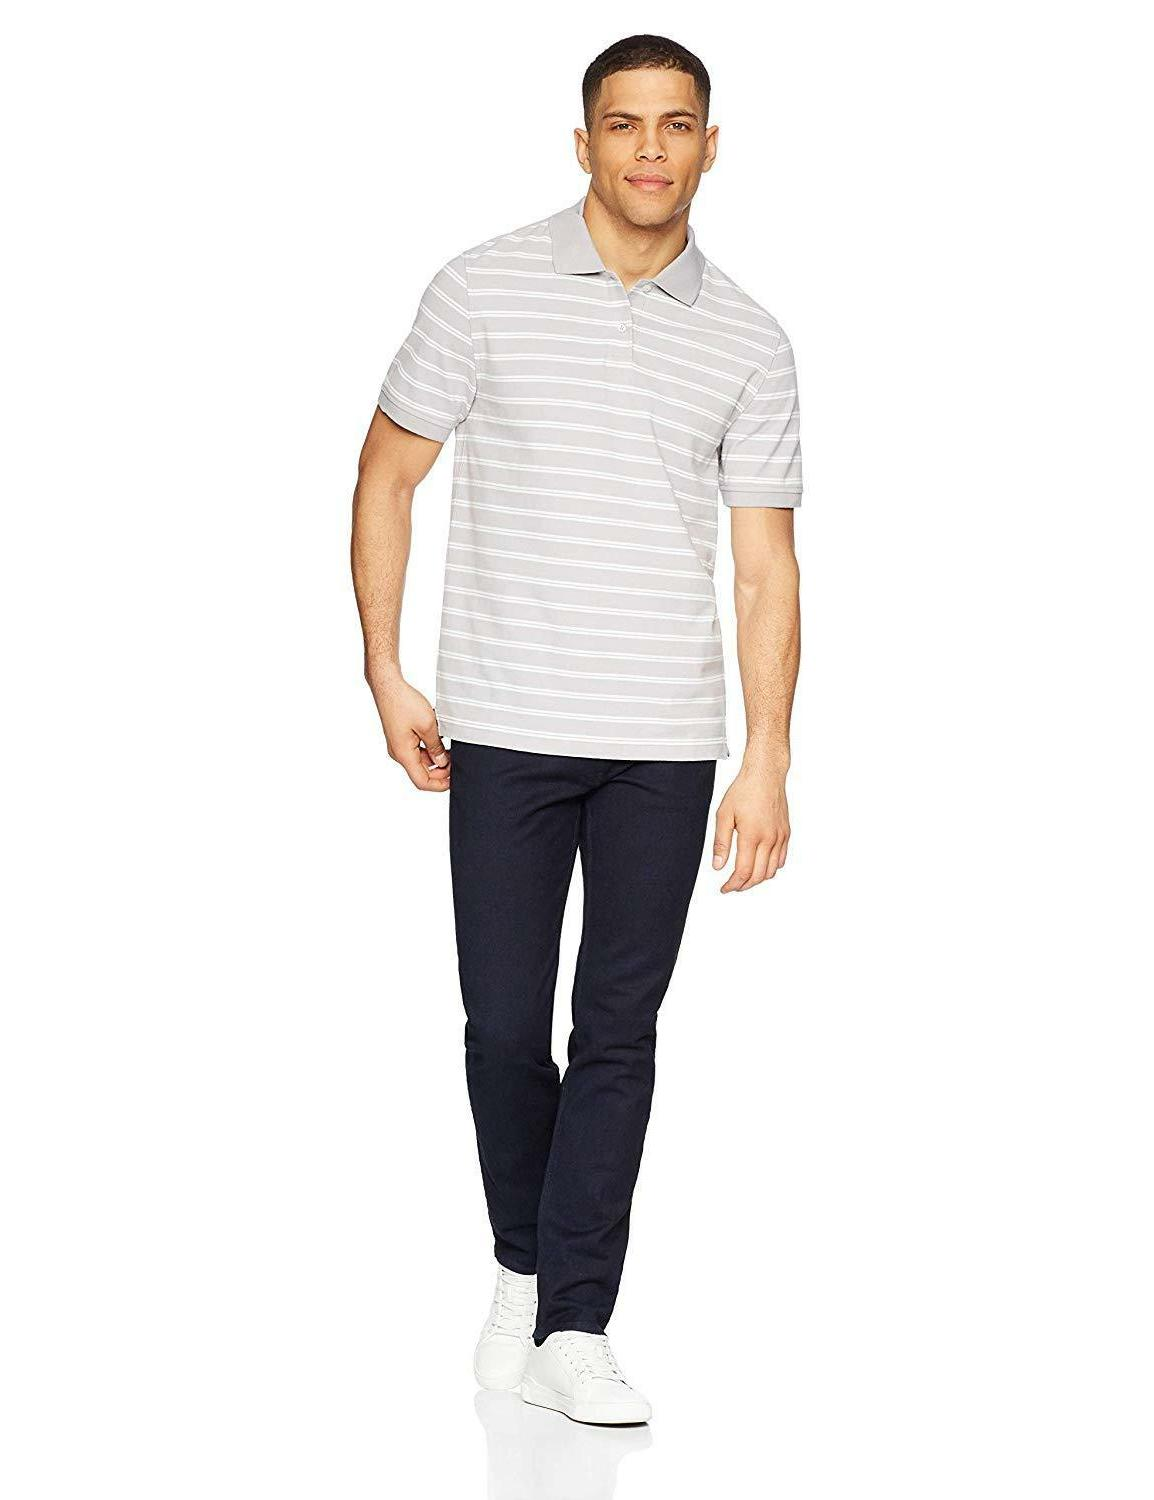 Amazon Essentials Men's Slim-Fit Striped Pique Shirt